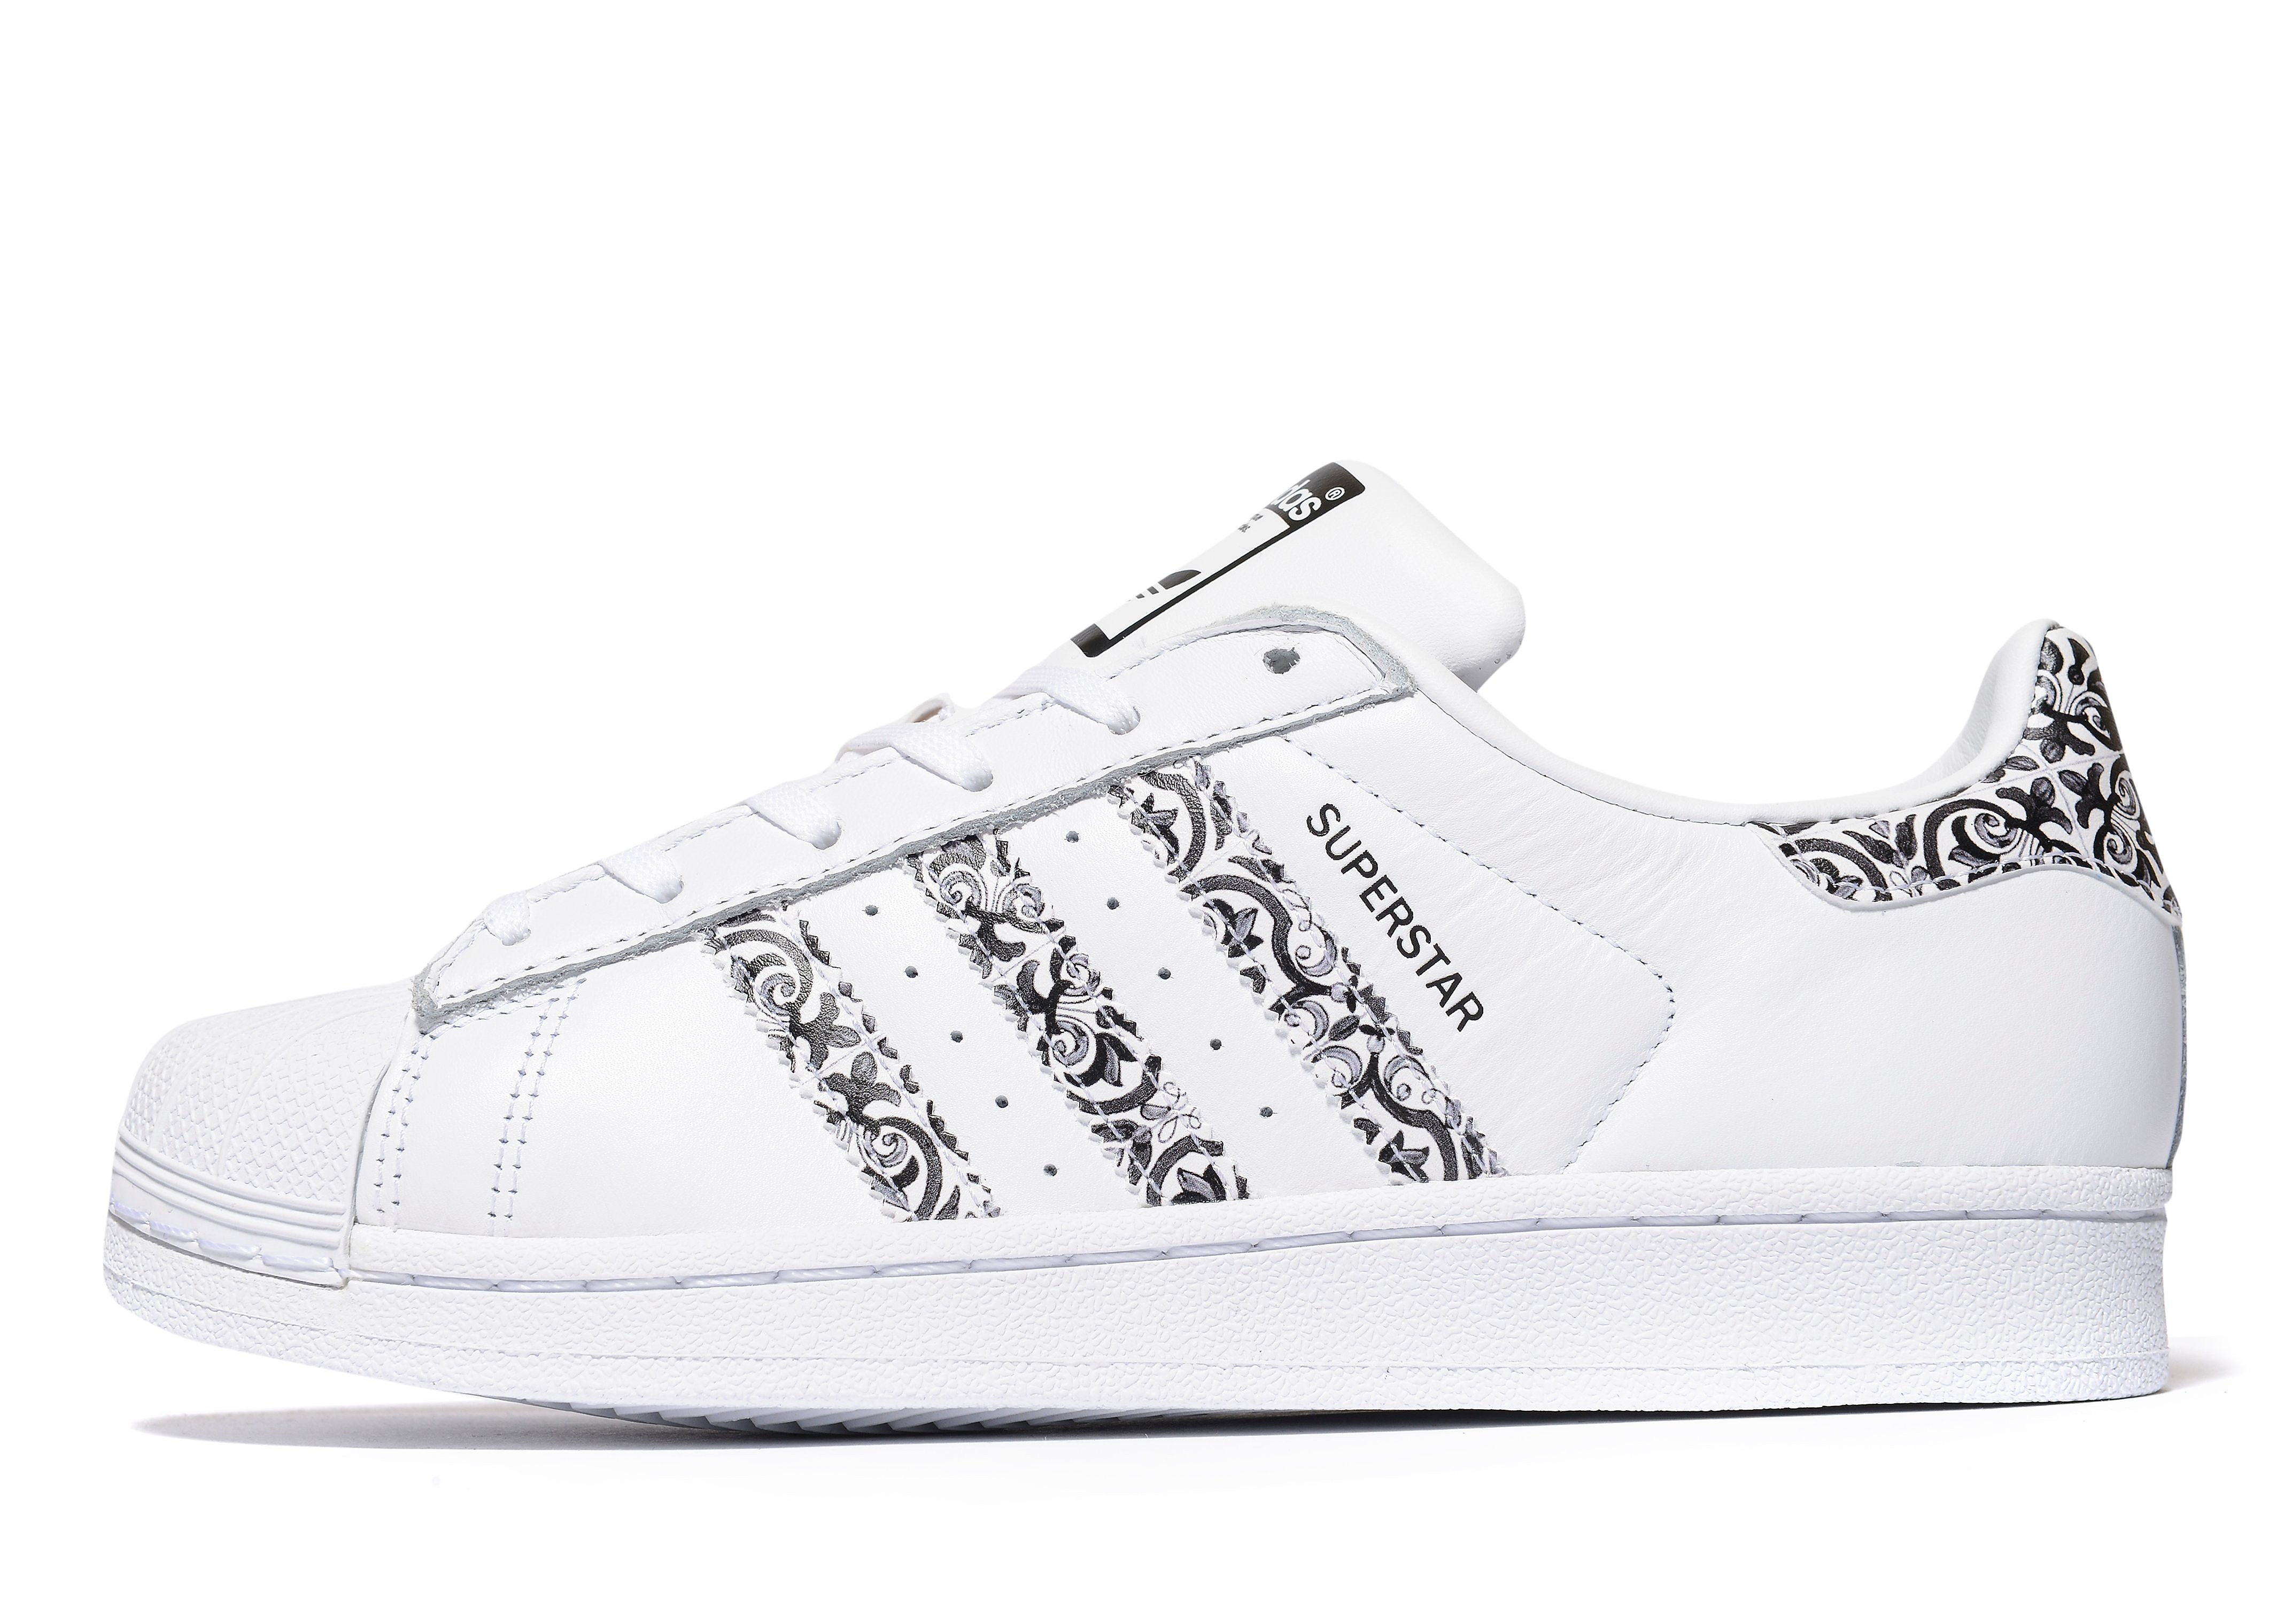 adidas Originals FARM Superstar Women's